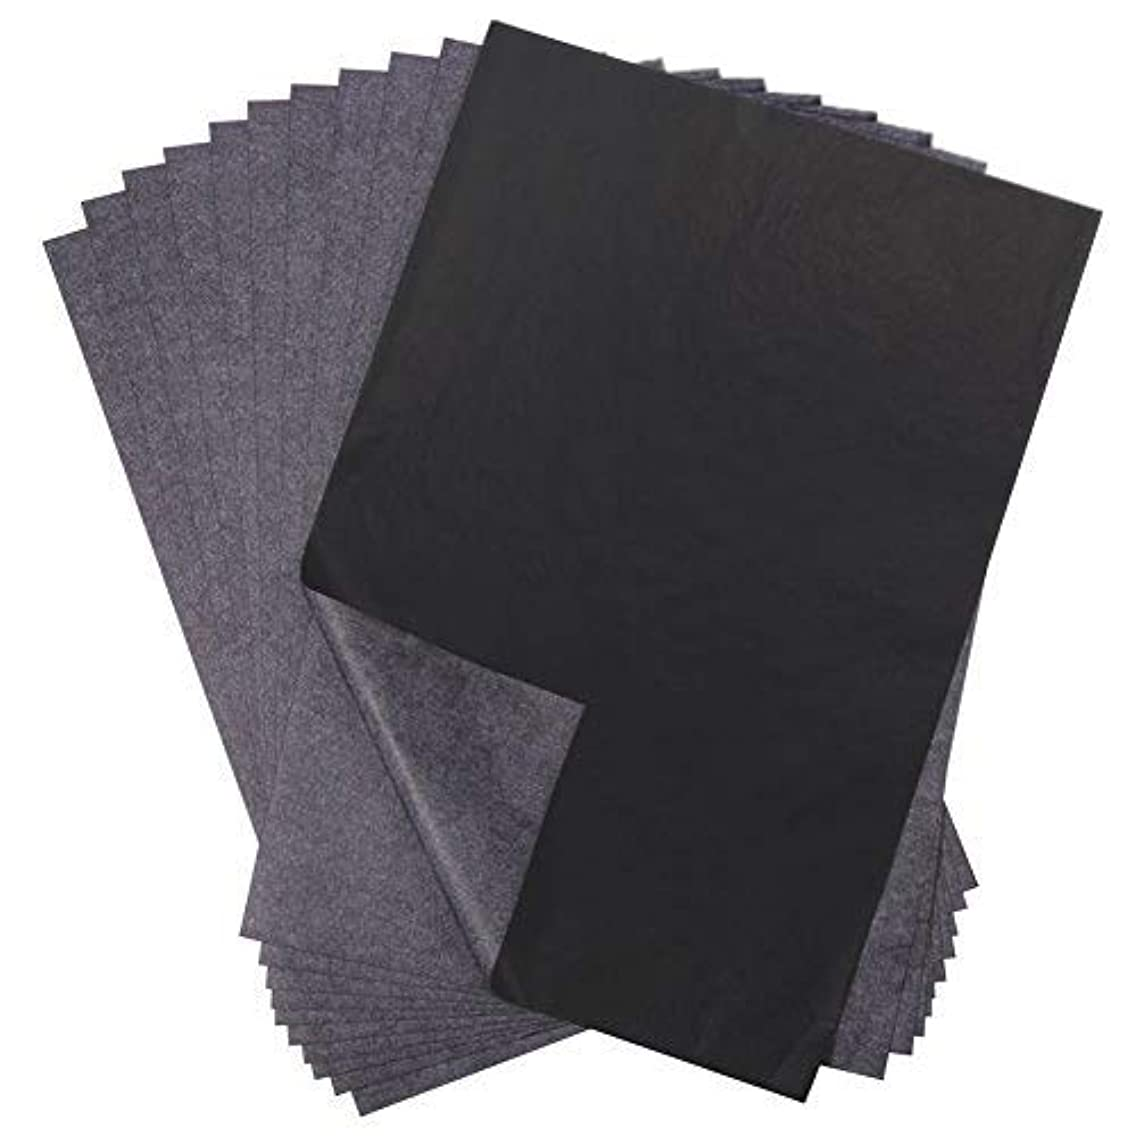 Selizo 120 Sheets Black Carbon Transfer Tracing Paper for Wood, Paper, Canvas and Other Art Surfaces (9 x 13 Inches)